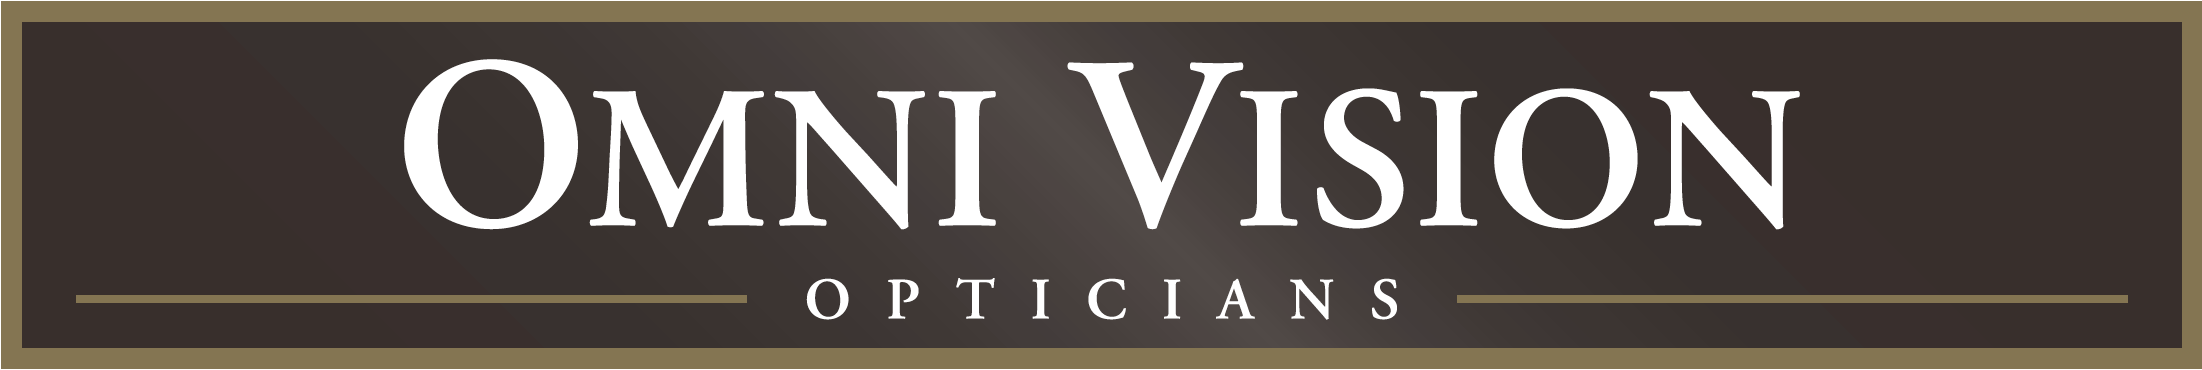 Omni Vision Opticians